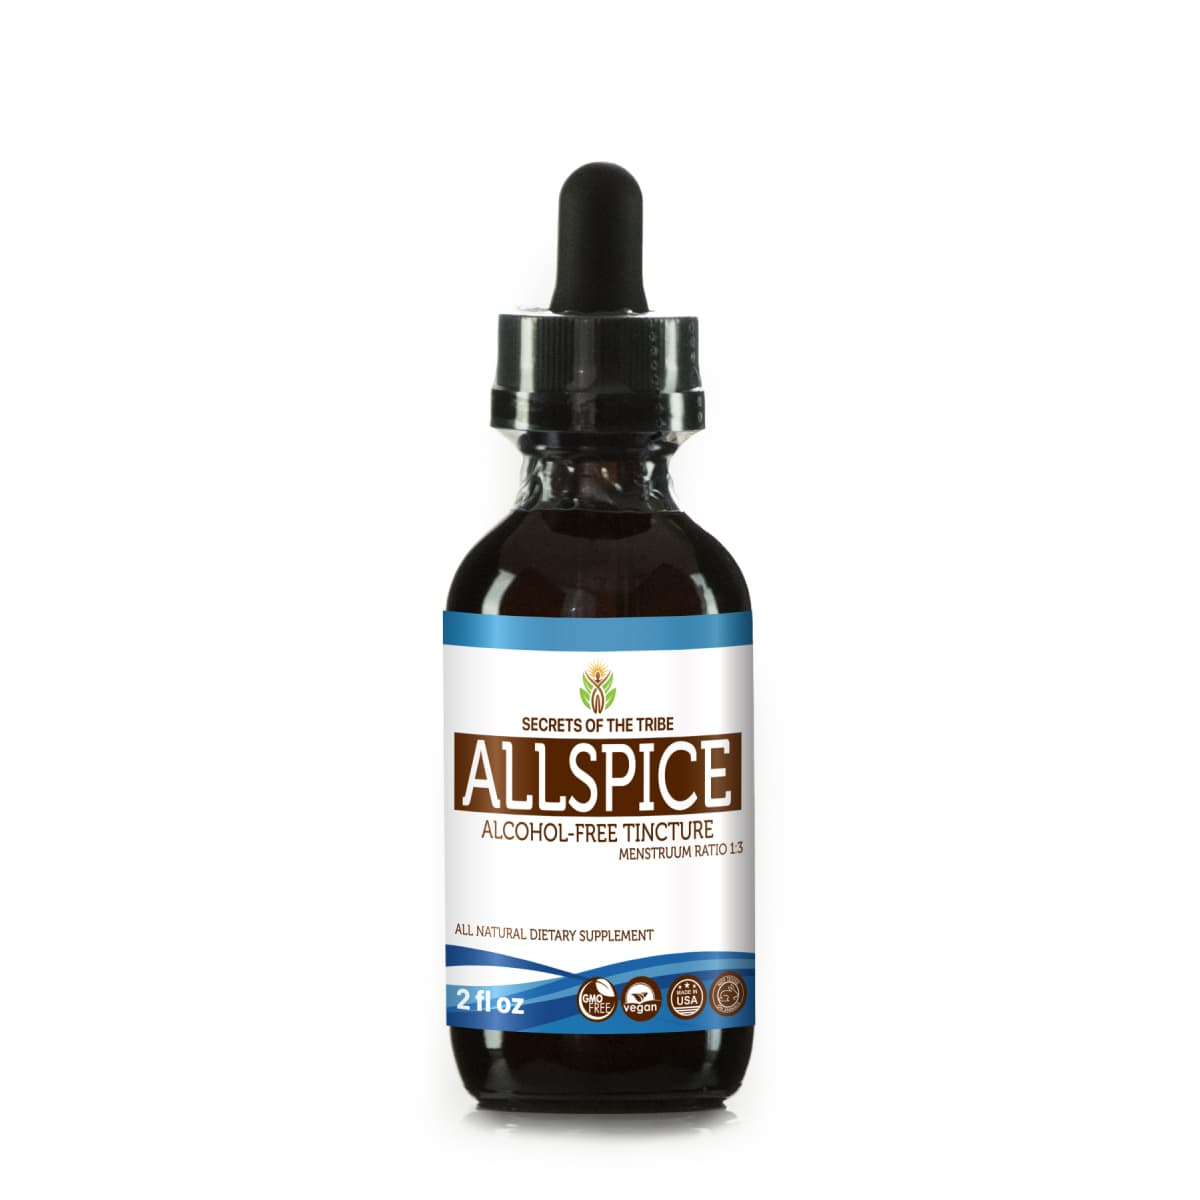 Allspice Tincture Alcohol-FREE Extract, Organic Allspice (Pimenta Dioica) Dried Fruit 2 oz by Nevada Pharm